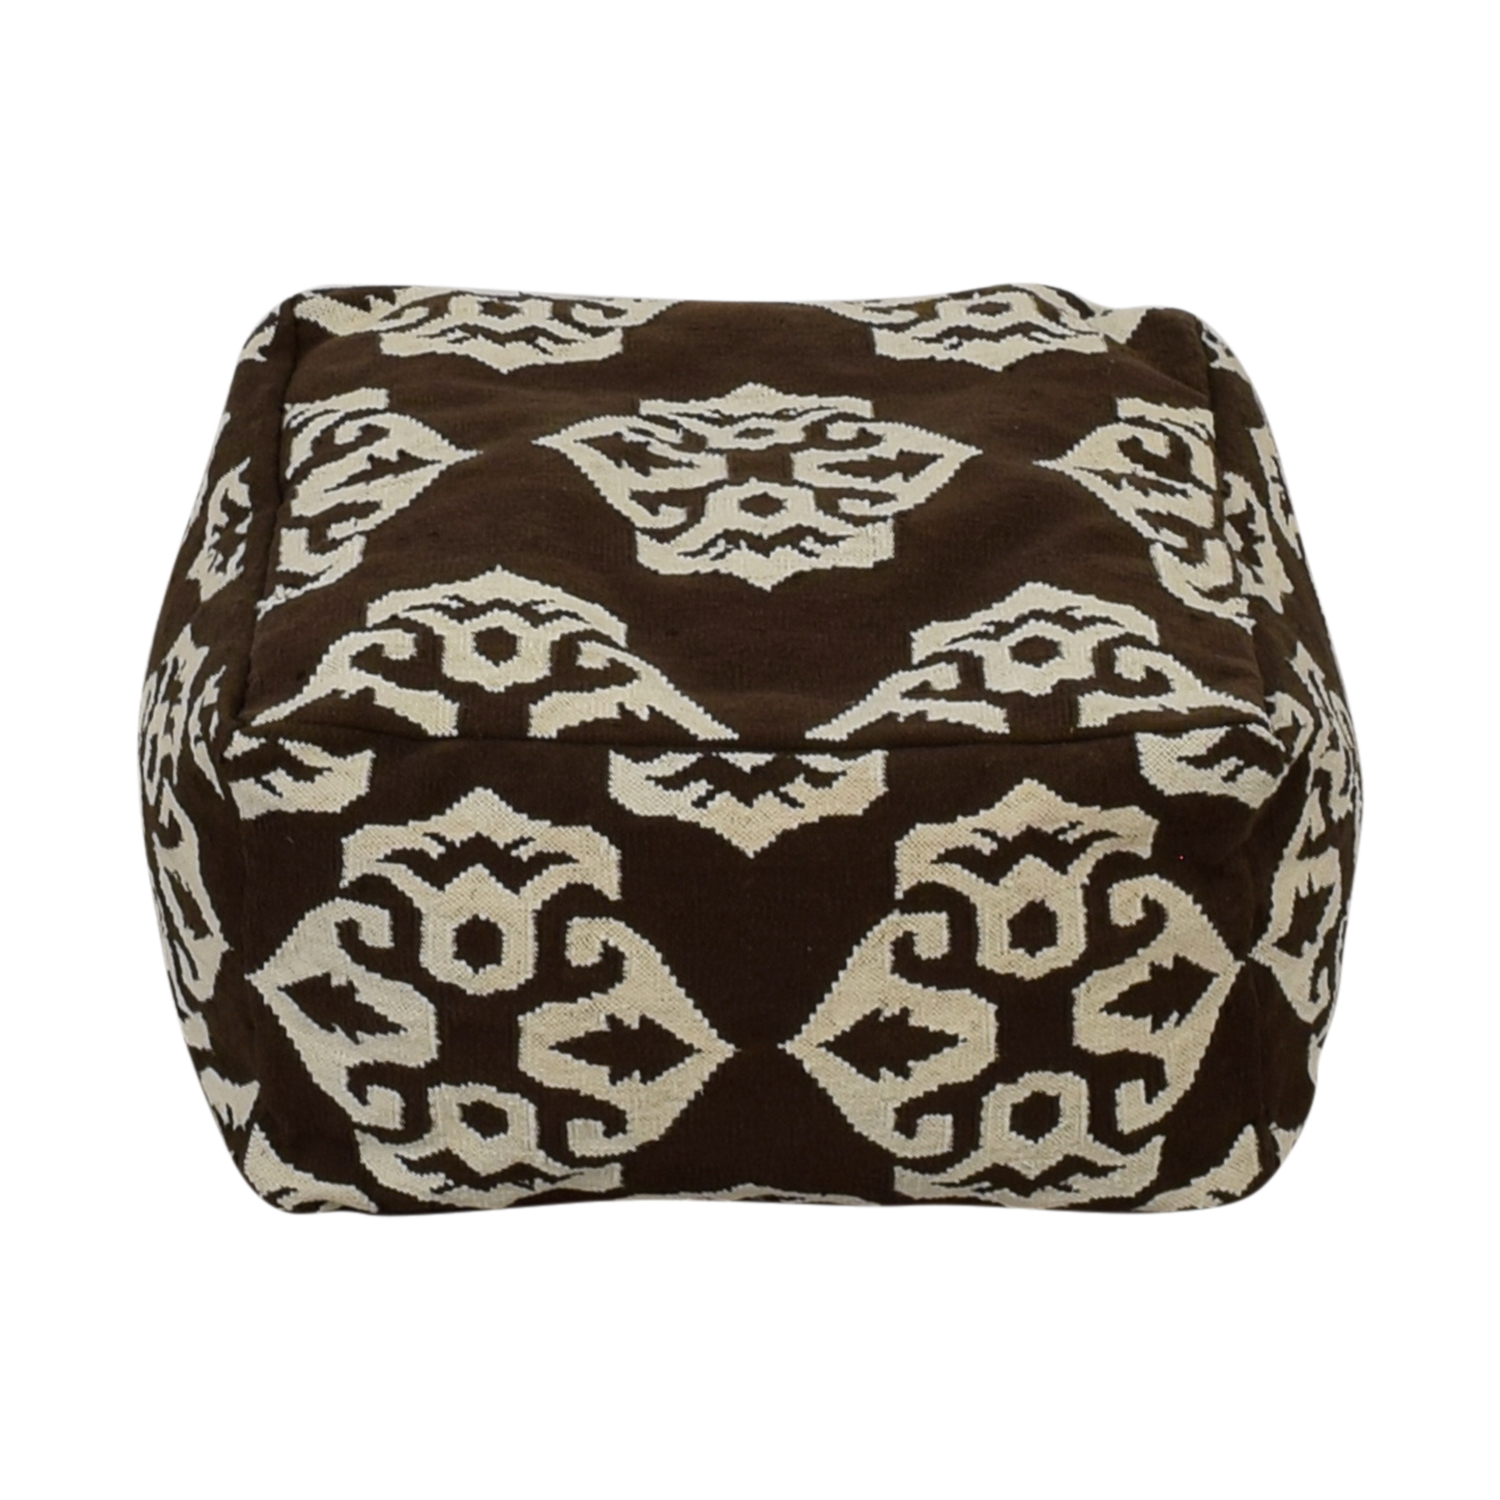 West Elm West Elm Pouf on sale